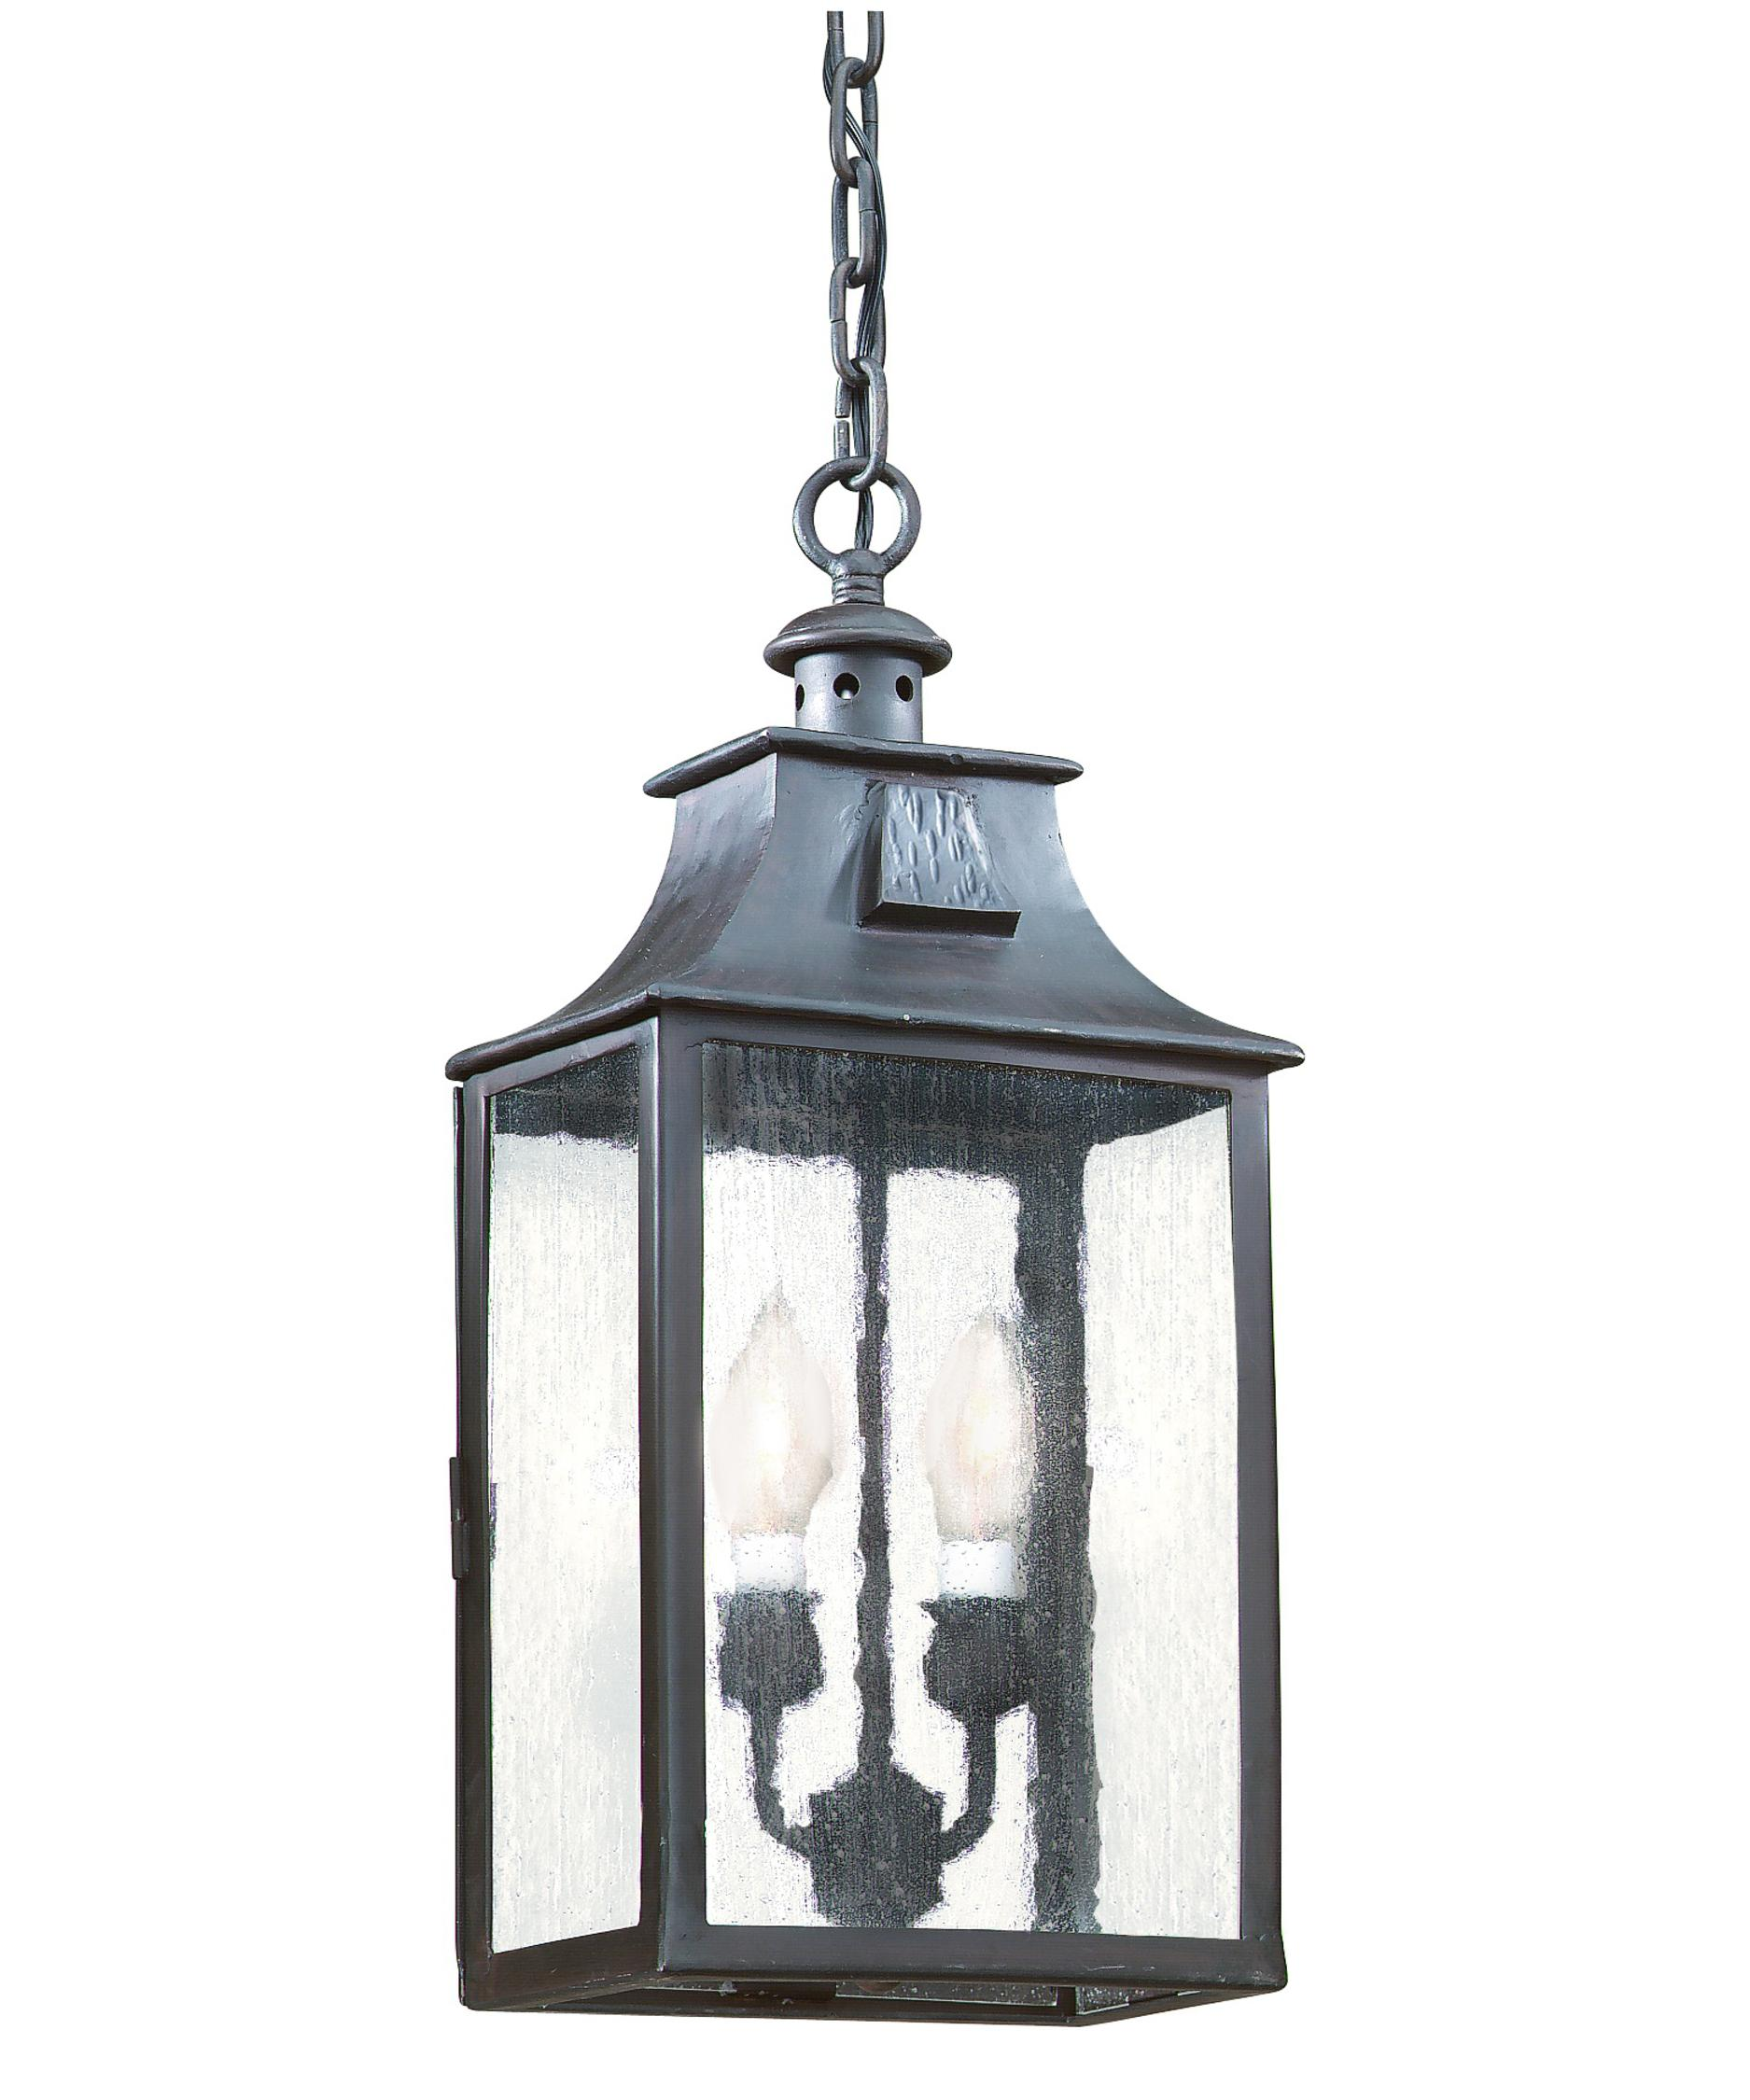 Outdoor hanging lamp - Shown In Old Bronze Finish And Clear Seeded Glass